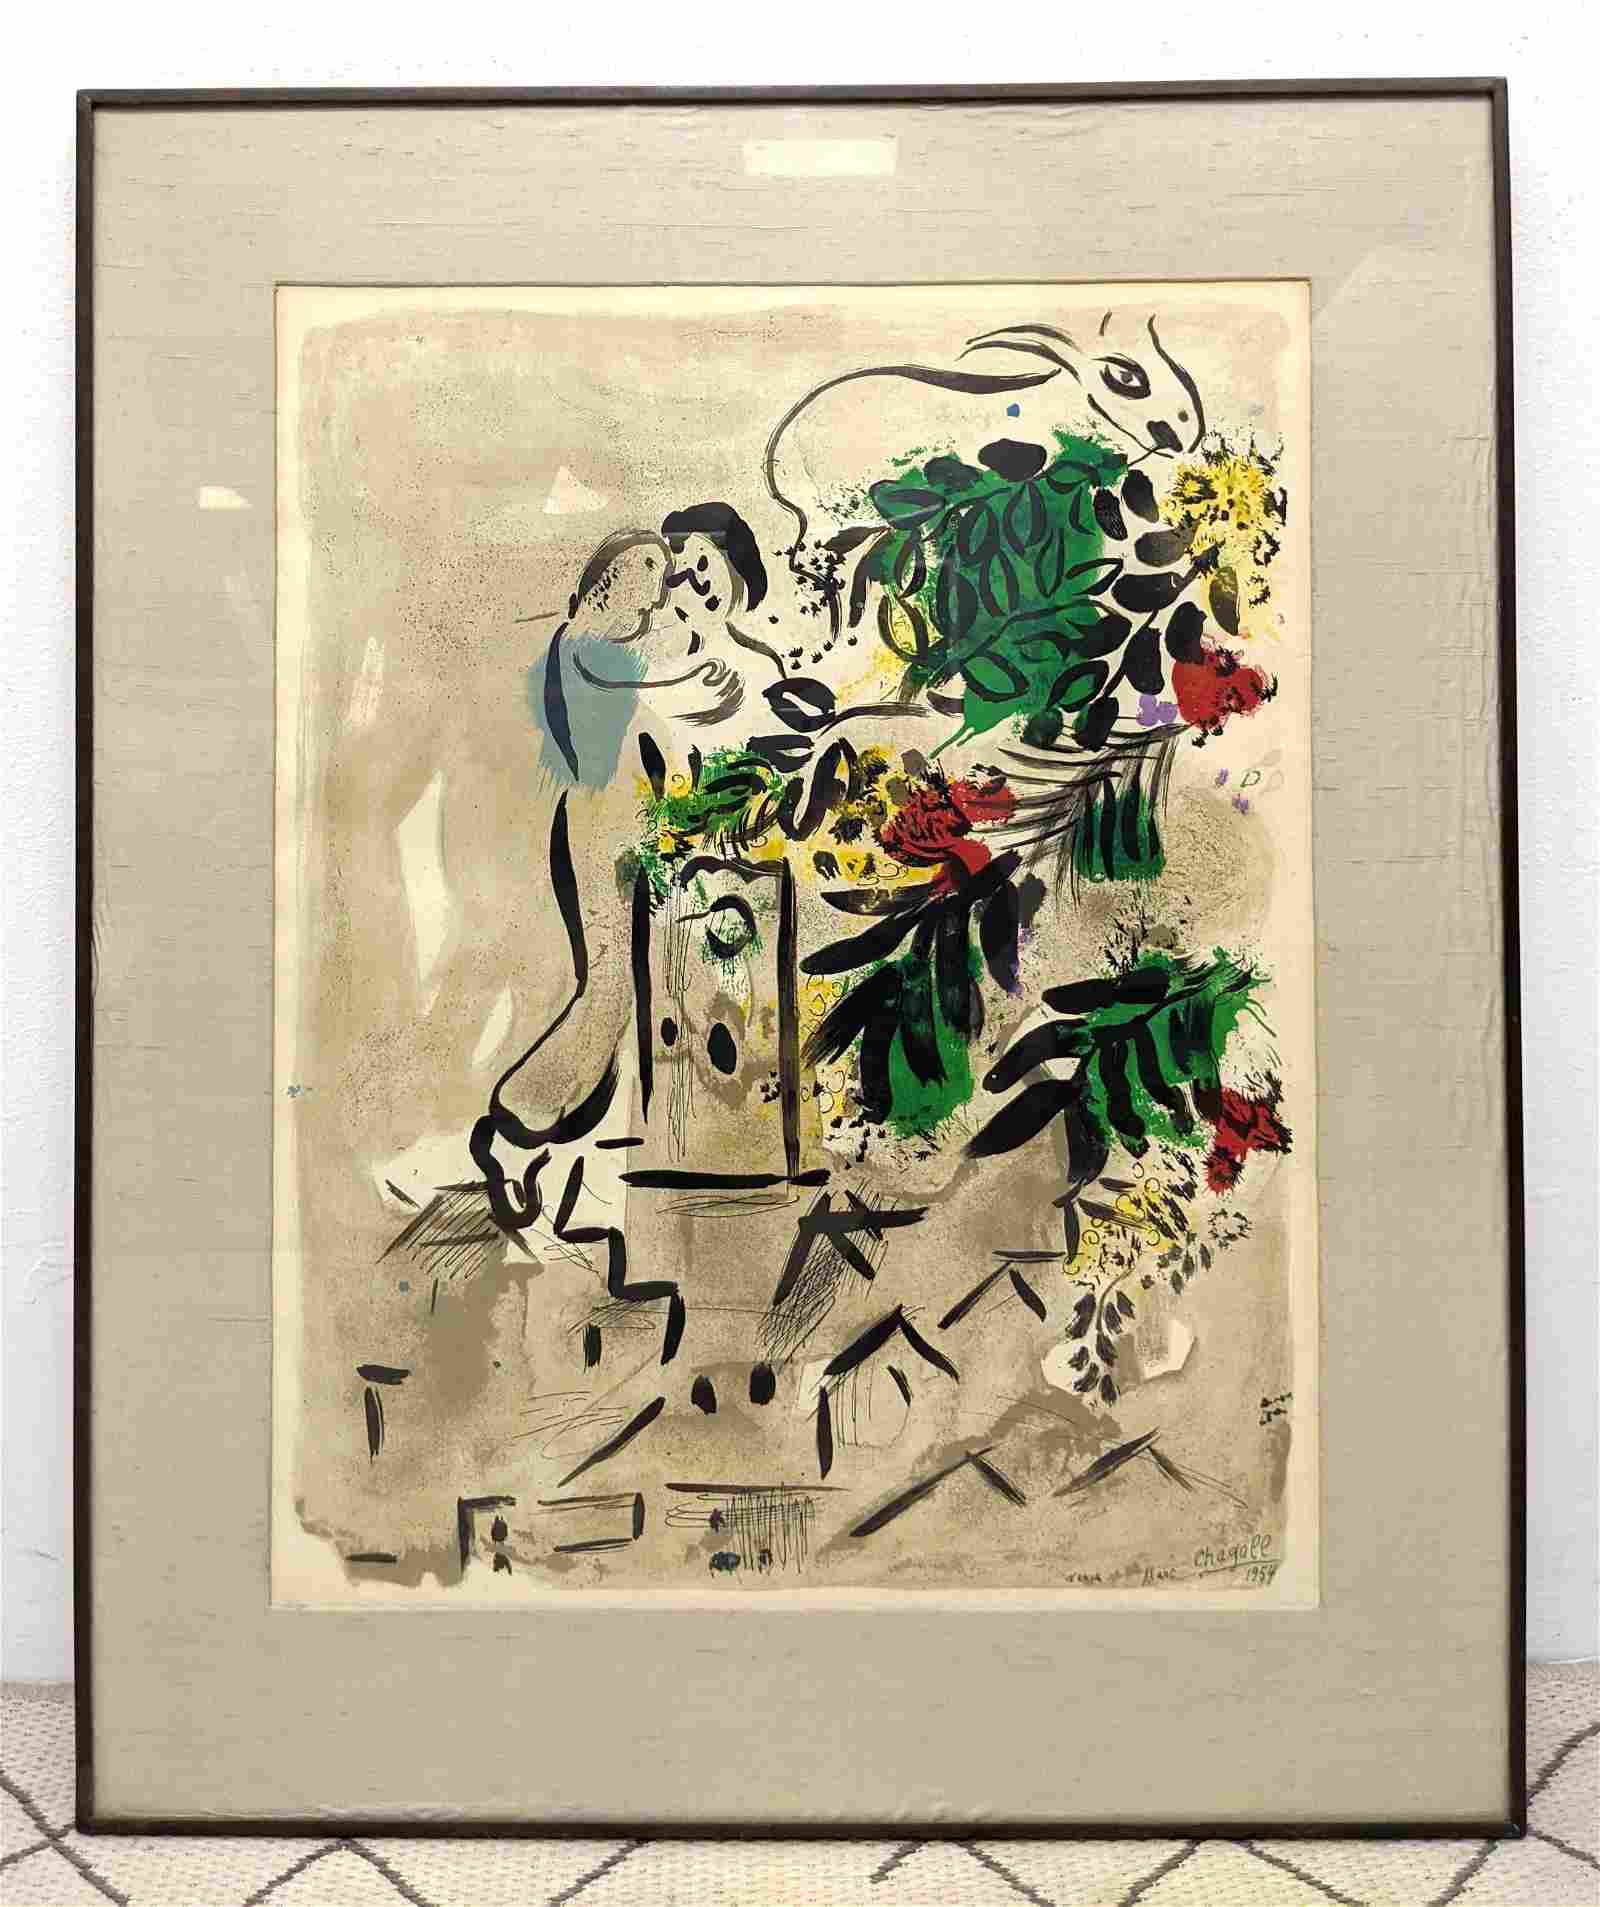 MARC CHAGALL Lithograph Print.  Framed under glass.